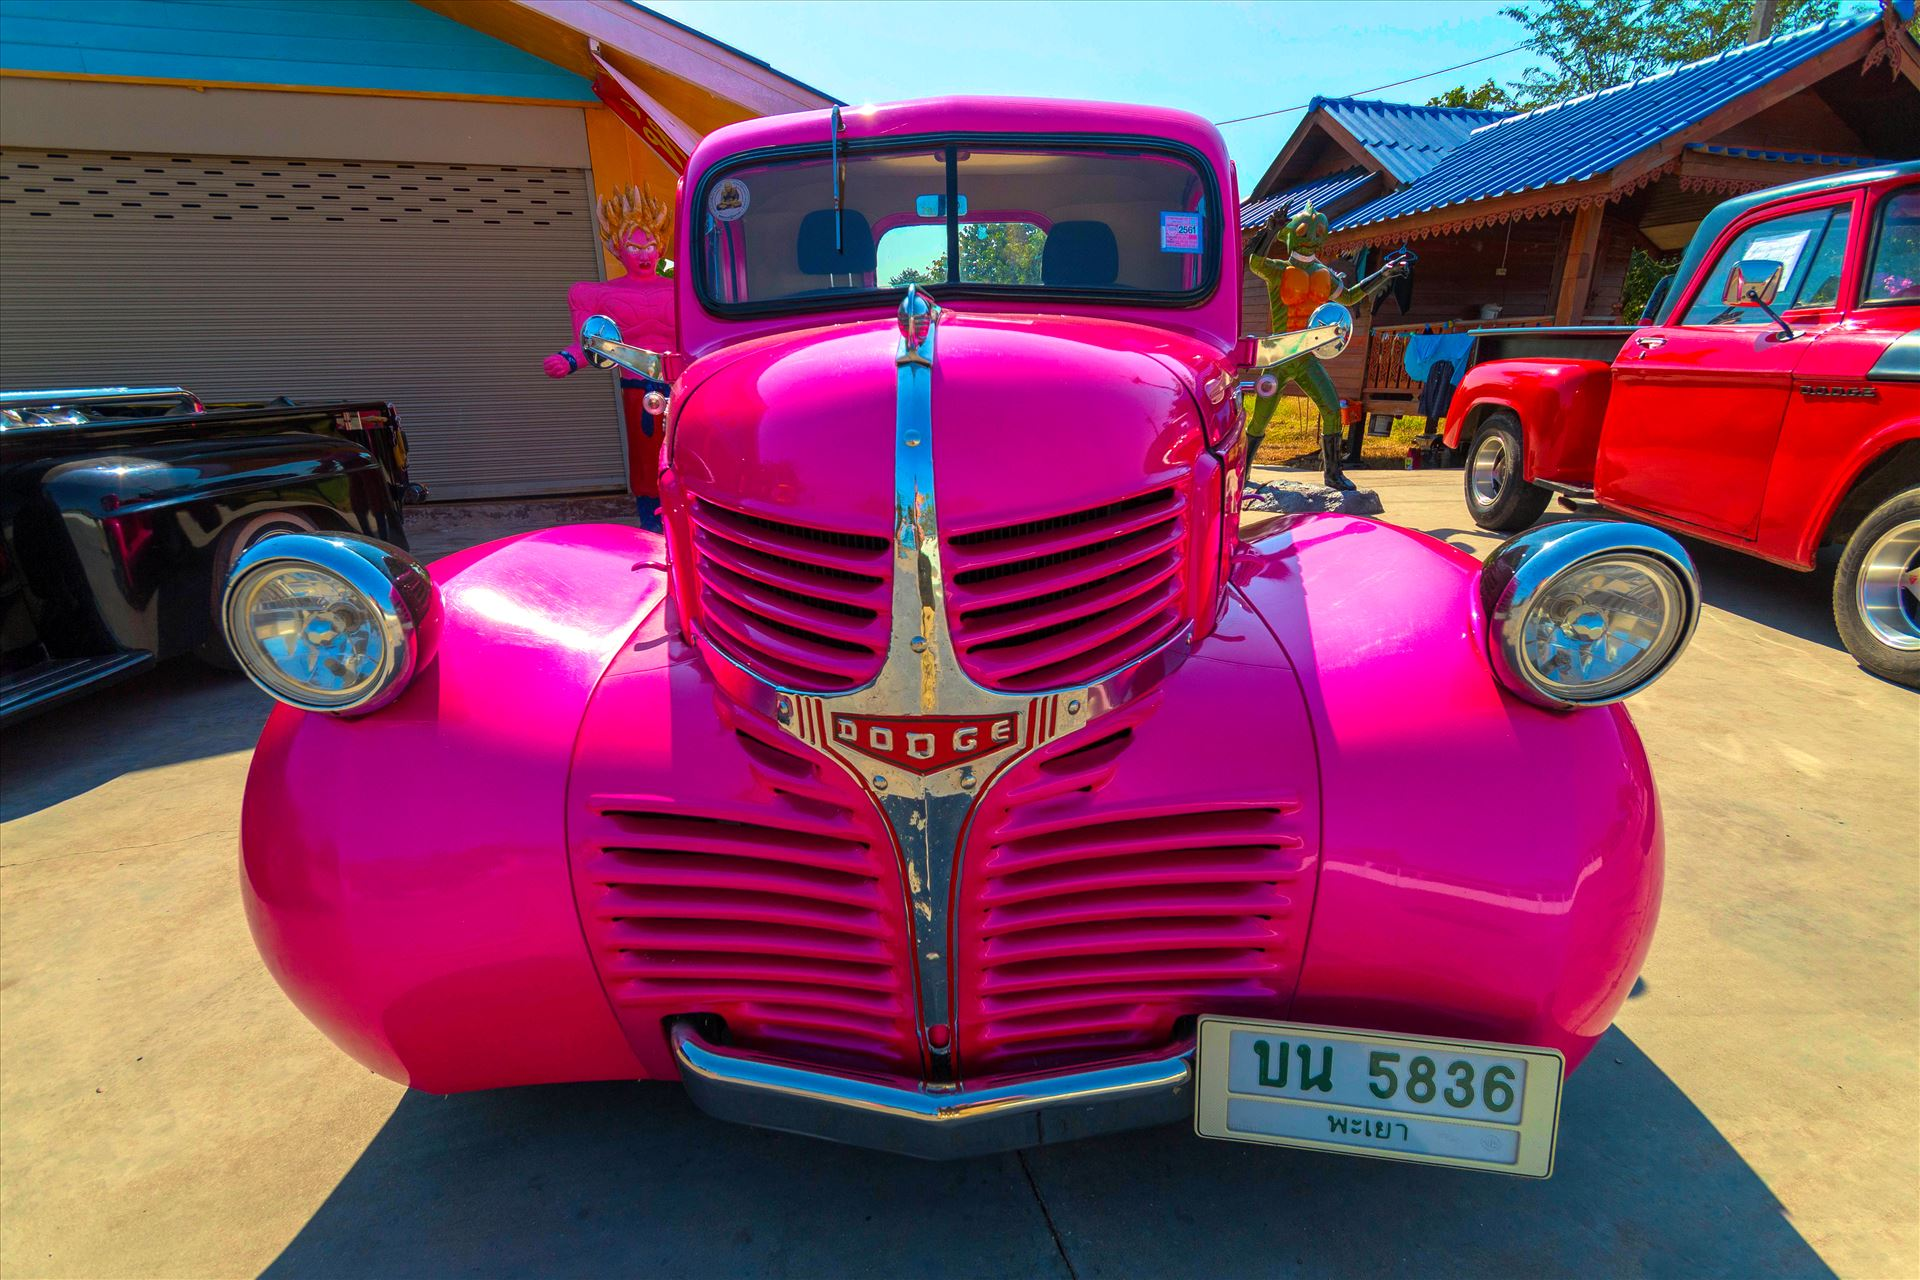 1941 Dodge WC (Civilian) half-ton pickup -  by AnnetteJohnsonPhotography